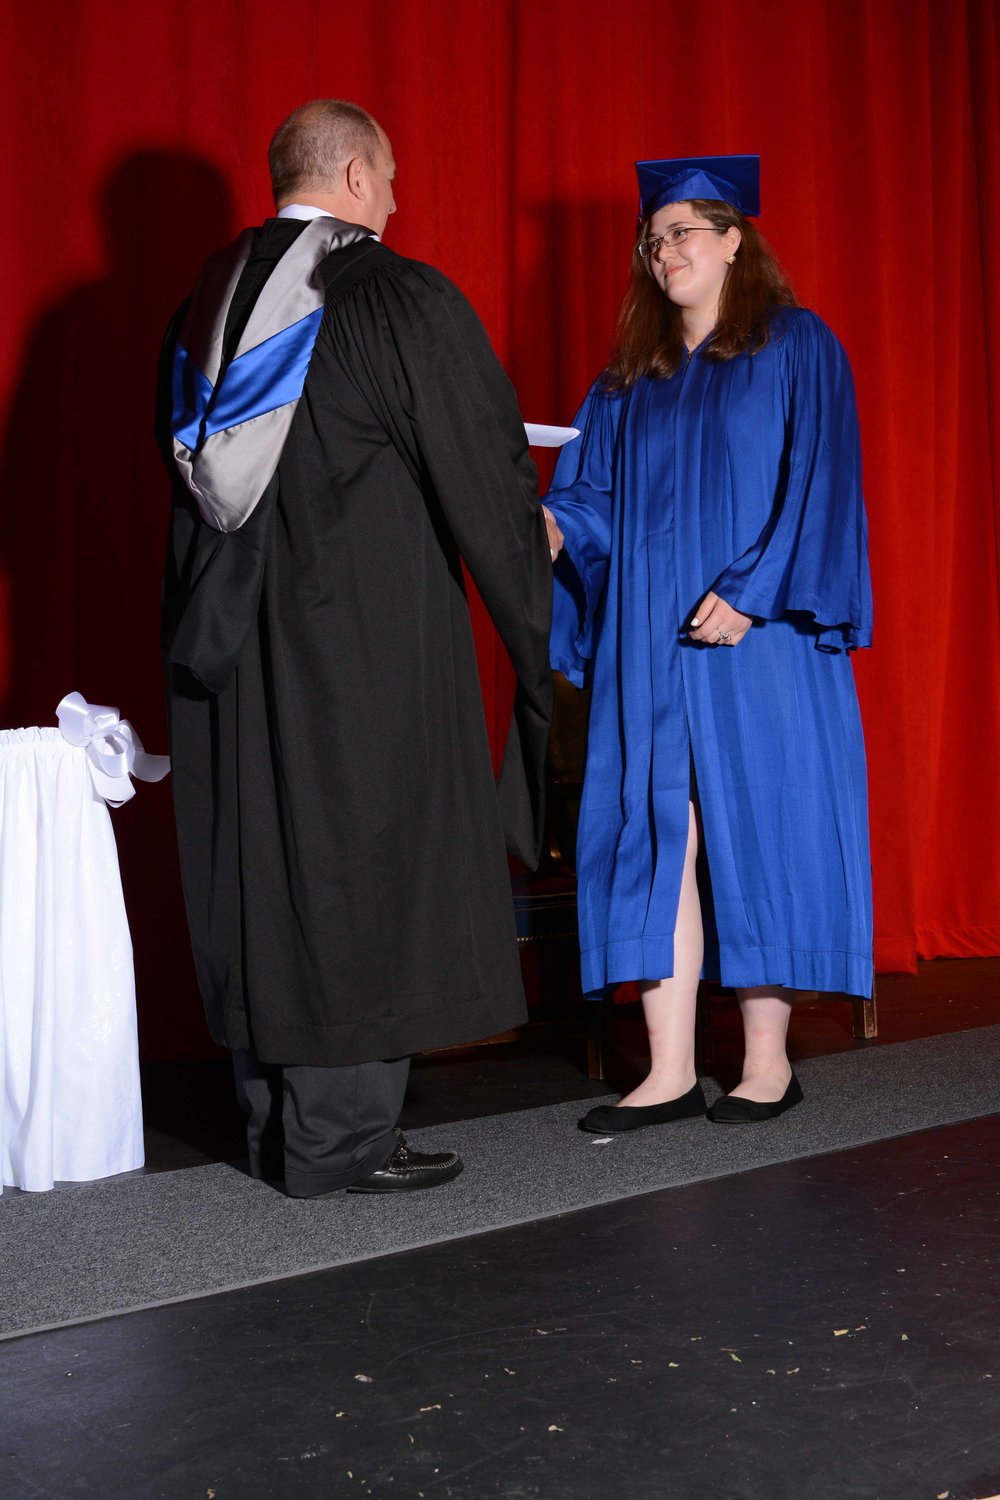 May15 HardingGraduation89.jpg